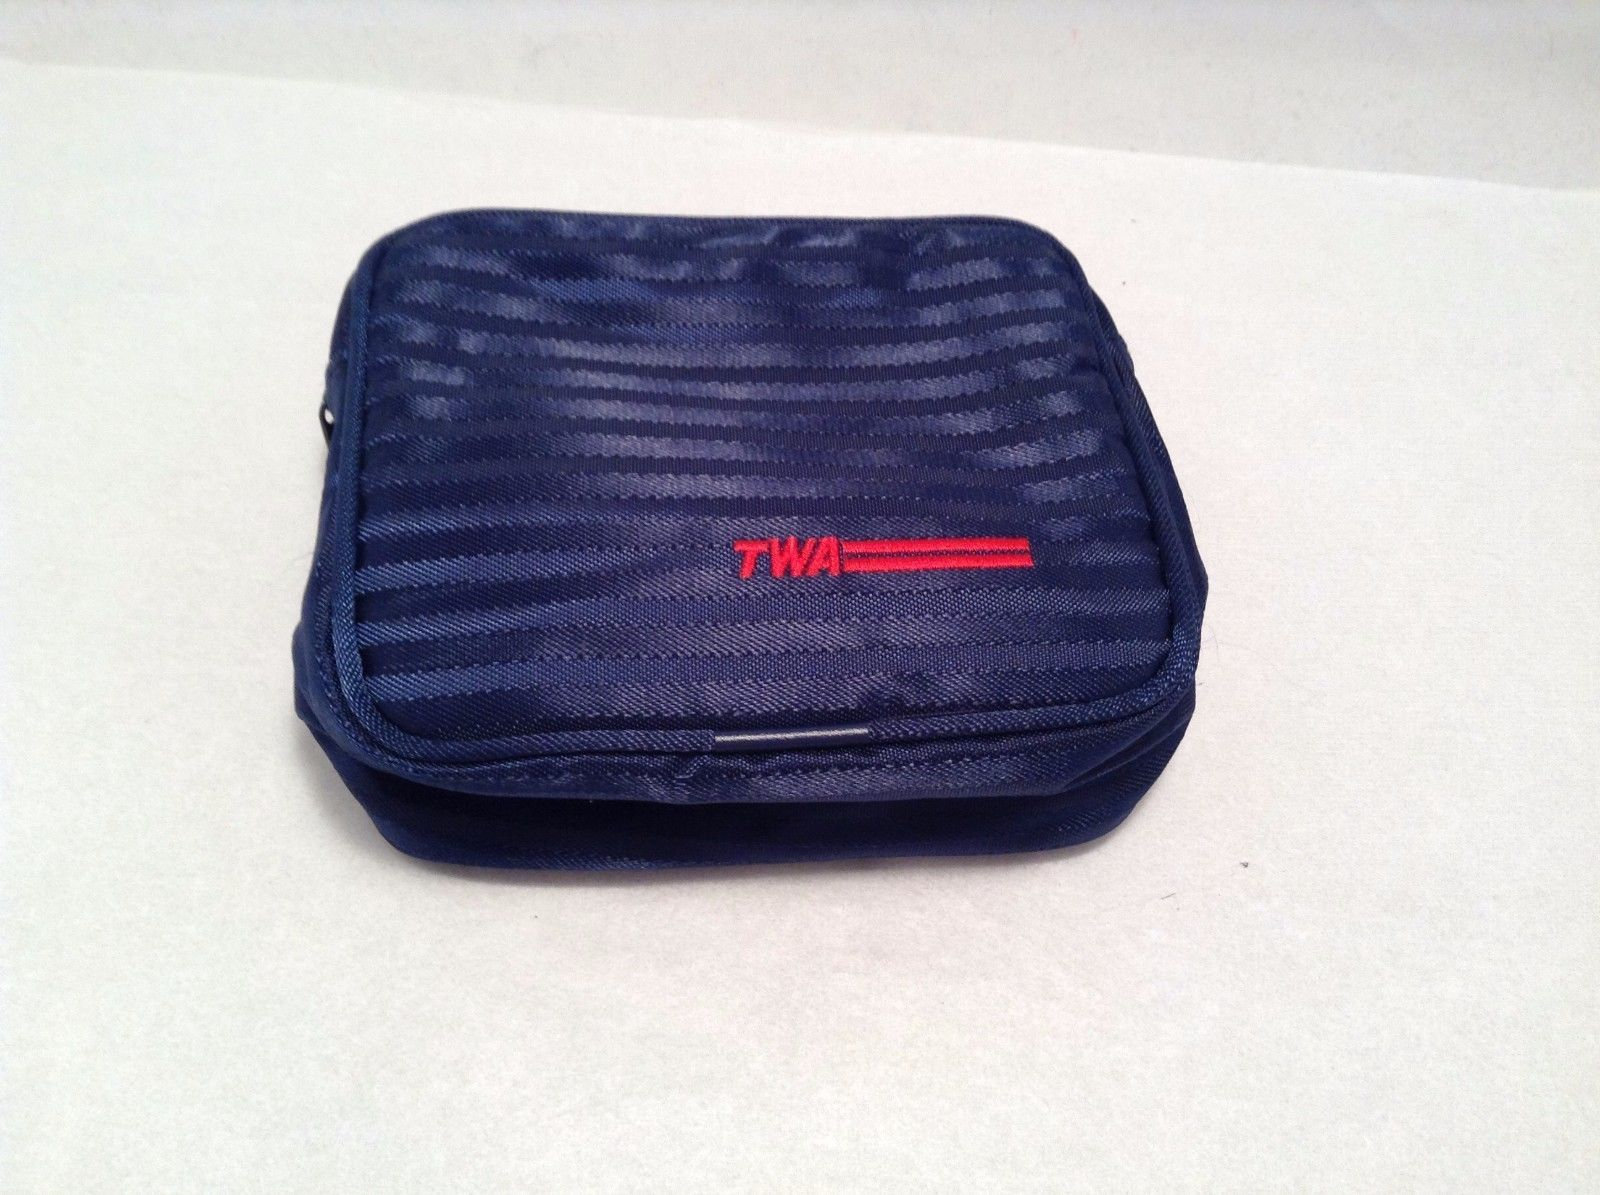 Blue TWA Toiletry Bag Shoehorn Toothbrush Comb Razor Shaving Cream Nail File